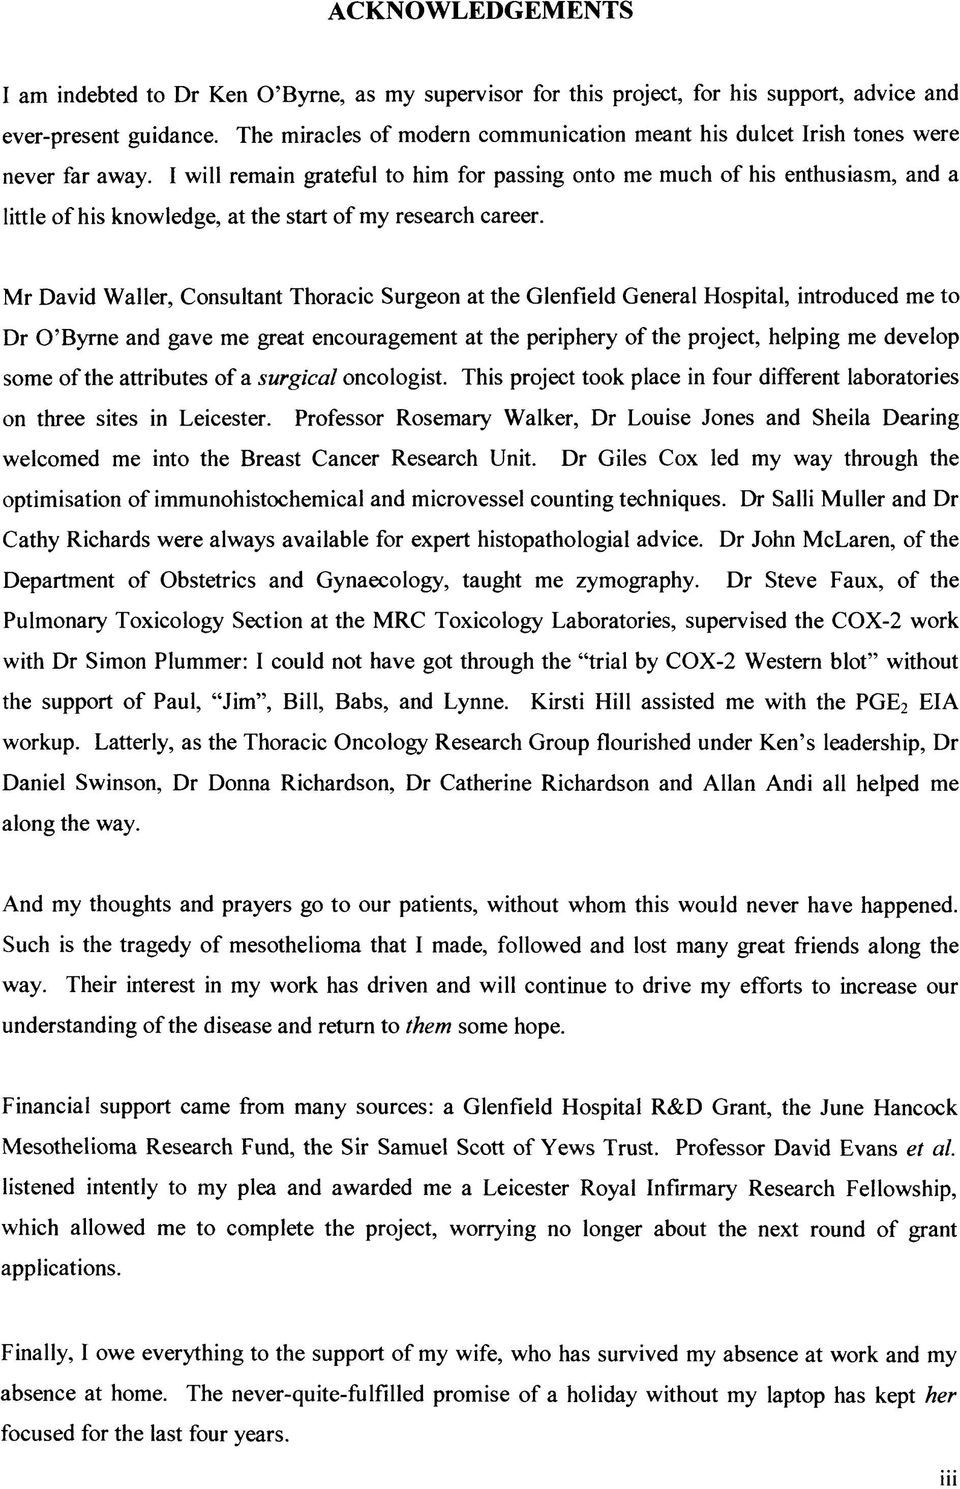 I will remain grateful to him for passing onto me much of his enthusiasm, and a little of his knowledge, at the start of my research career.